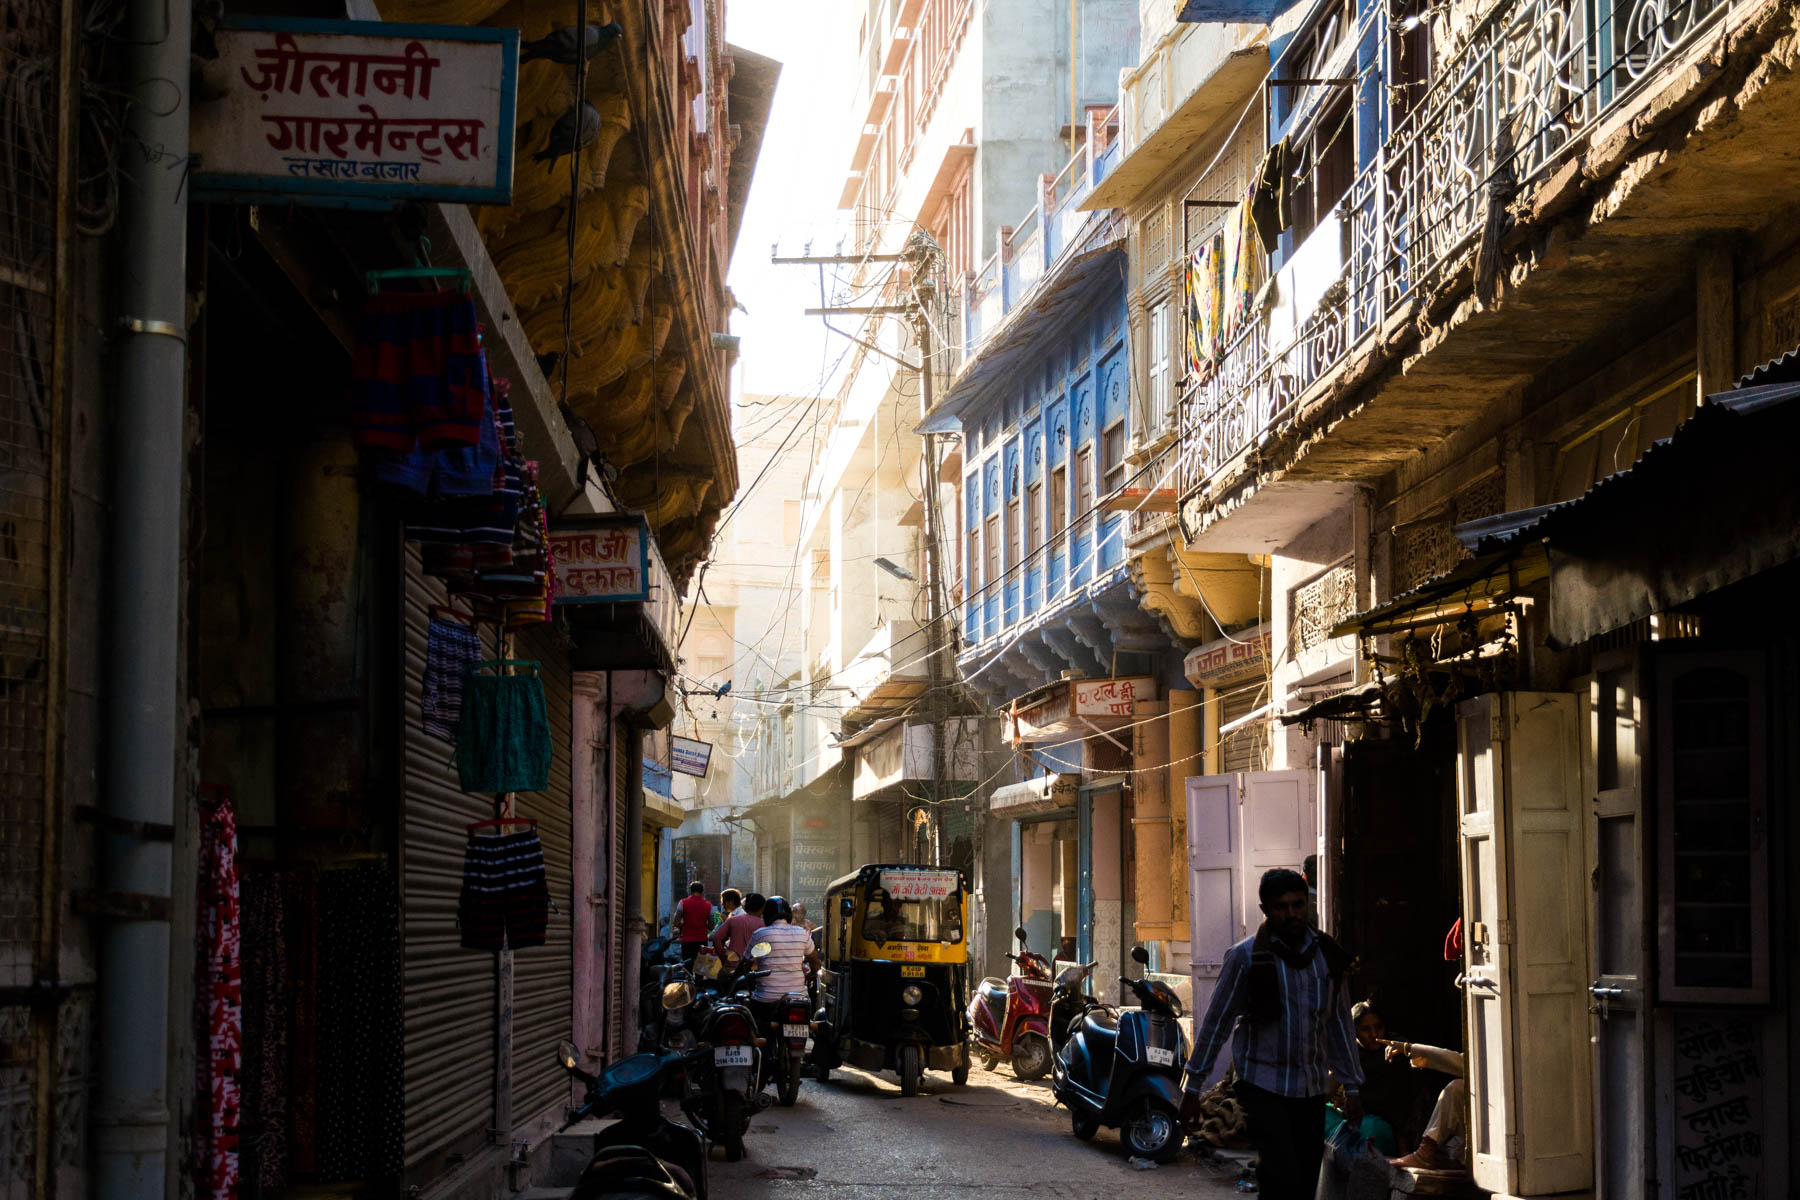 Photo essay about the streets and people of the Blue City of Jodhpur, Rajasthan, India - Golden hour in the alleys of Jodhpur - Lost With Purpose